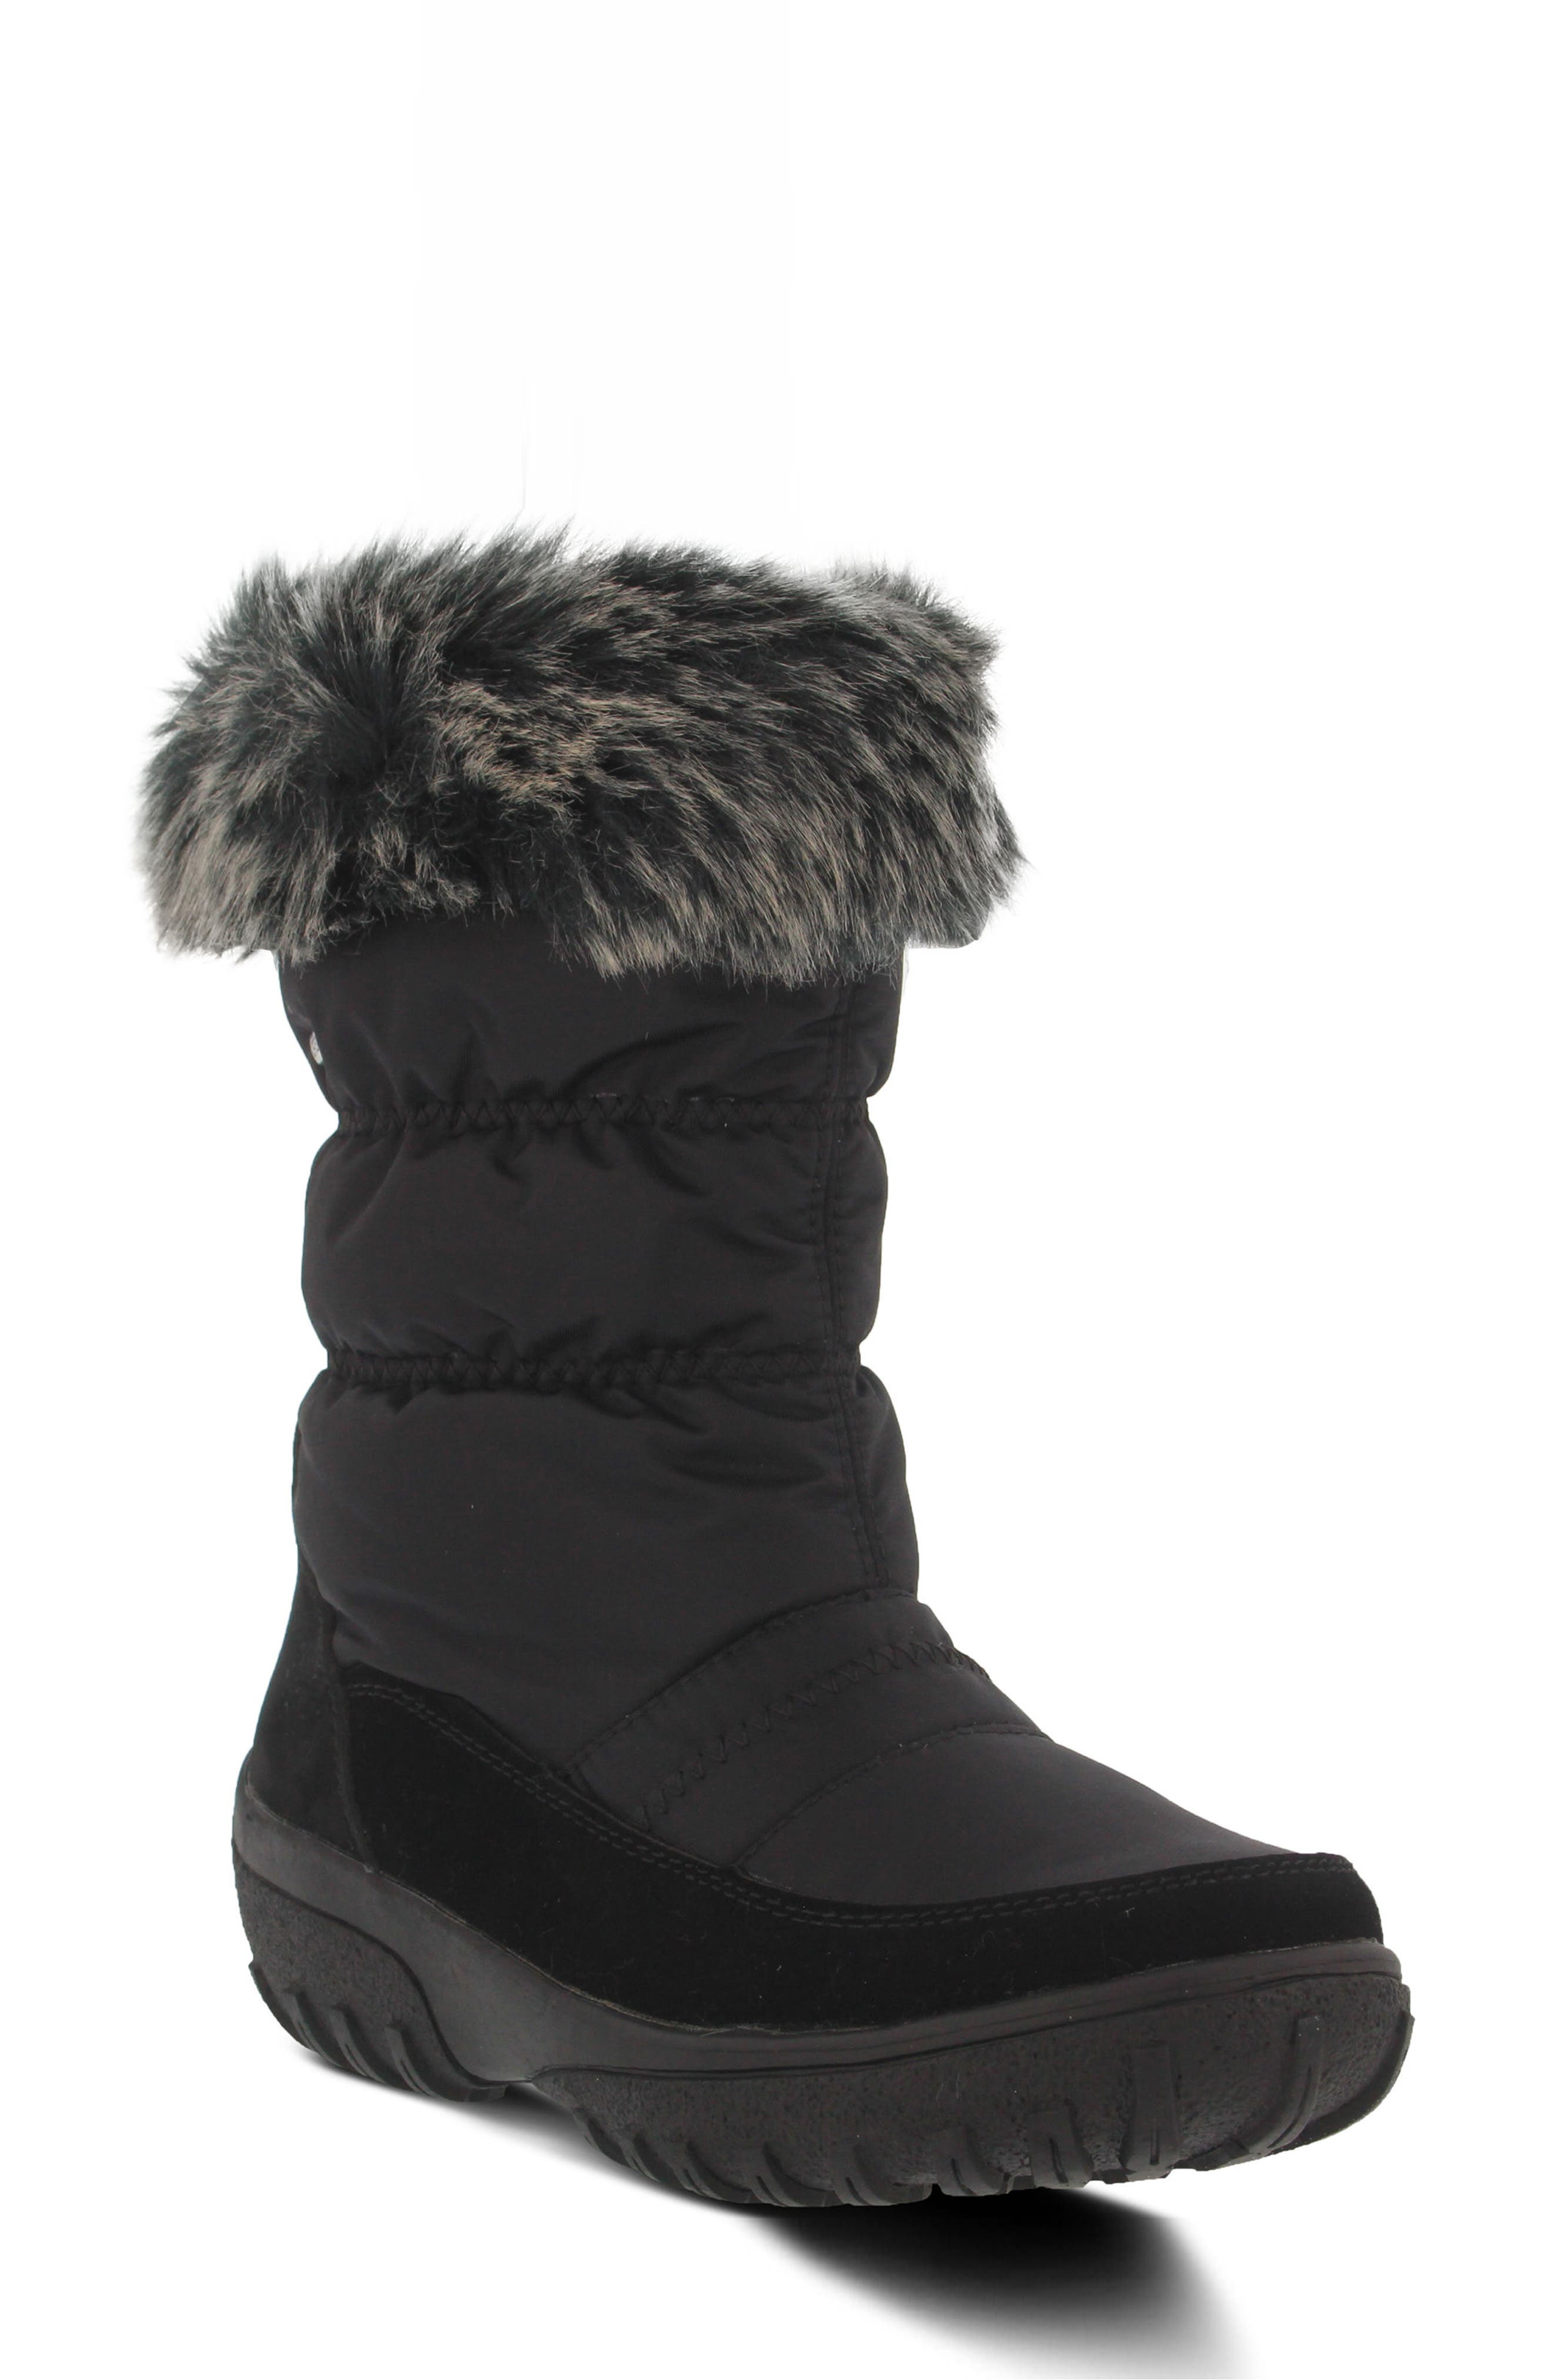 Rolim Faux Fur Trim Waterproof Boot,                         Main,                         color, Black